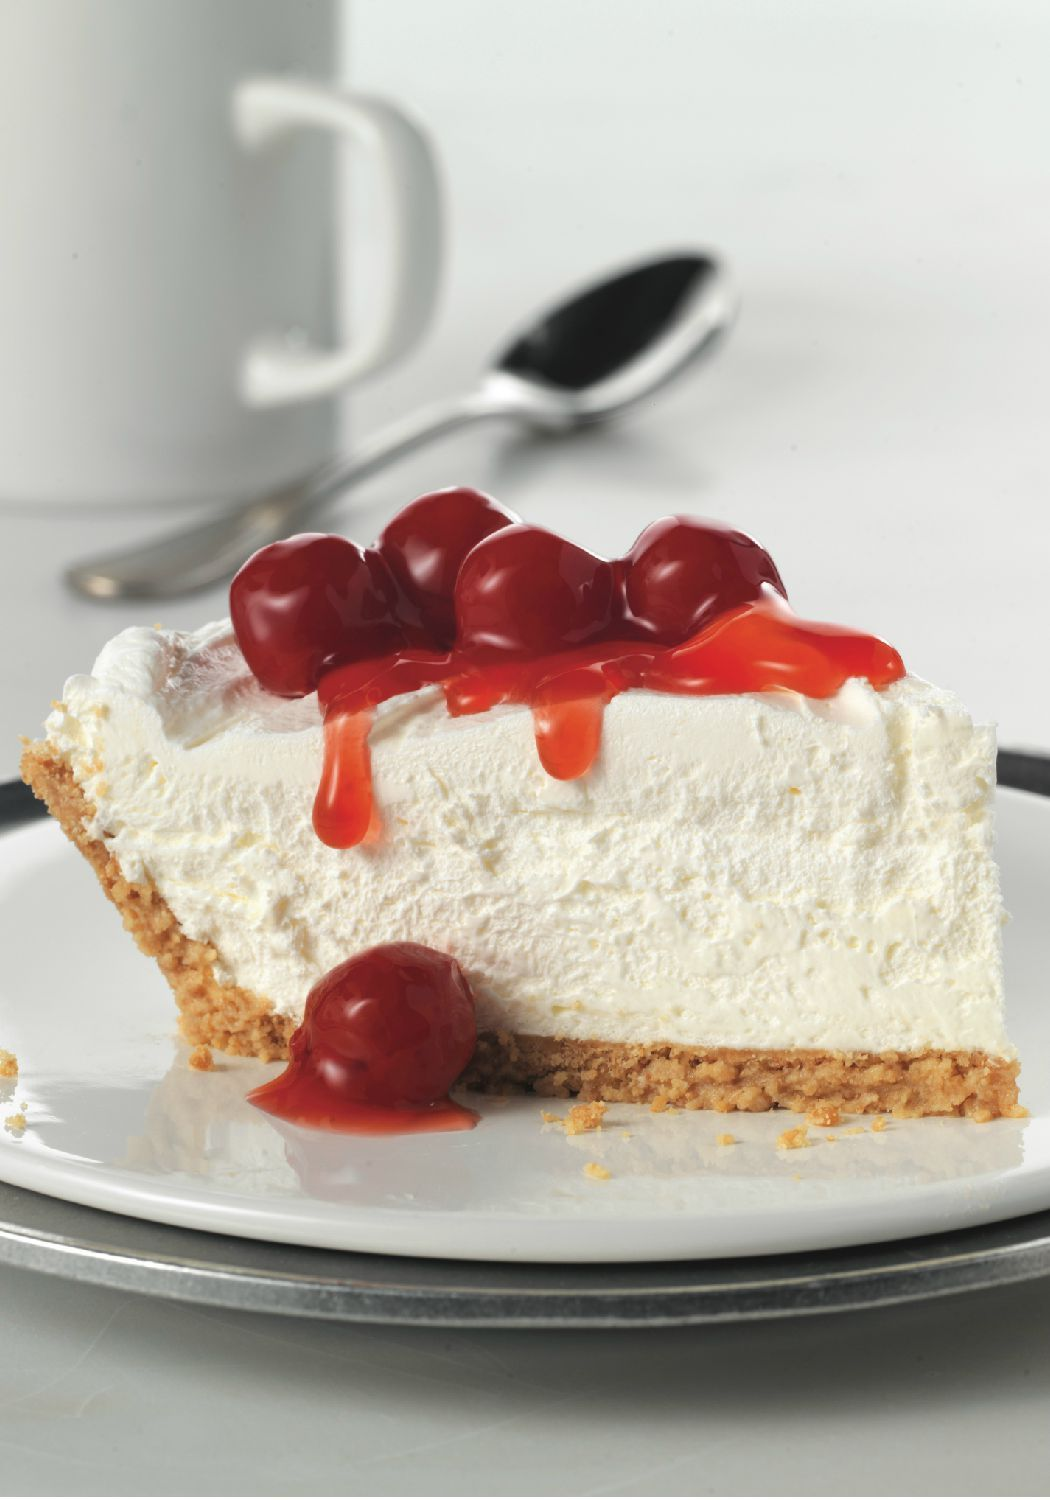 Fluffy Cheesecake This No Bake Cherry Topped Cheesecake Recipe Gets Its Amazing Height From Cool Whip Whipped Topping Fluffy Y Fluffy Cheesecake Dessert Recipes Cheesecake Recipes